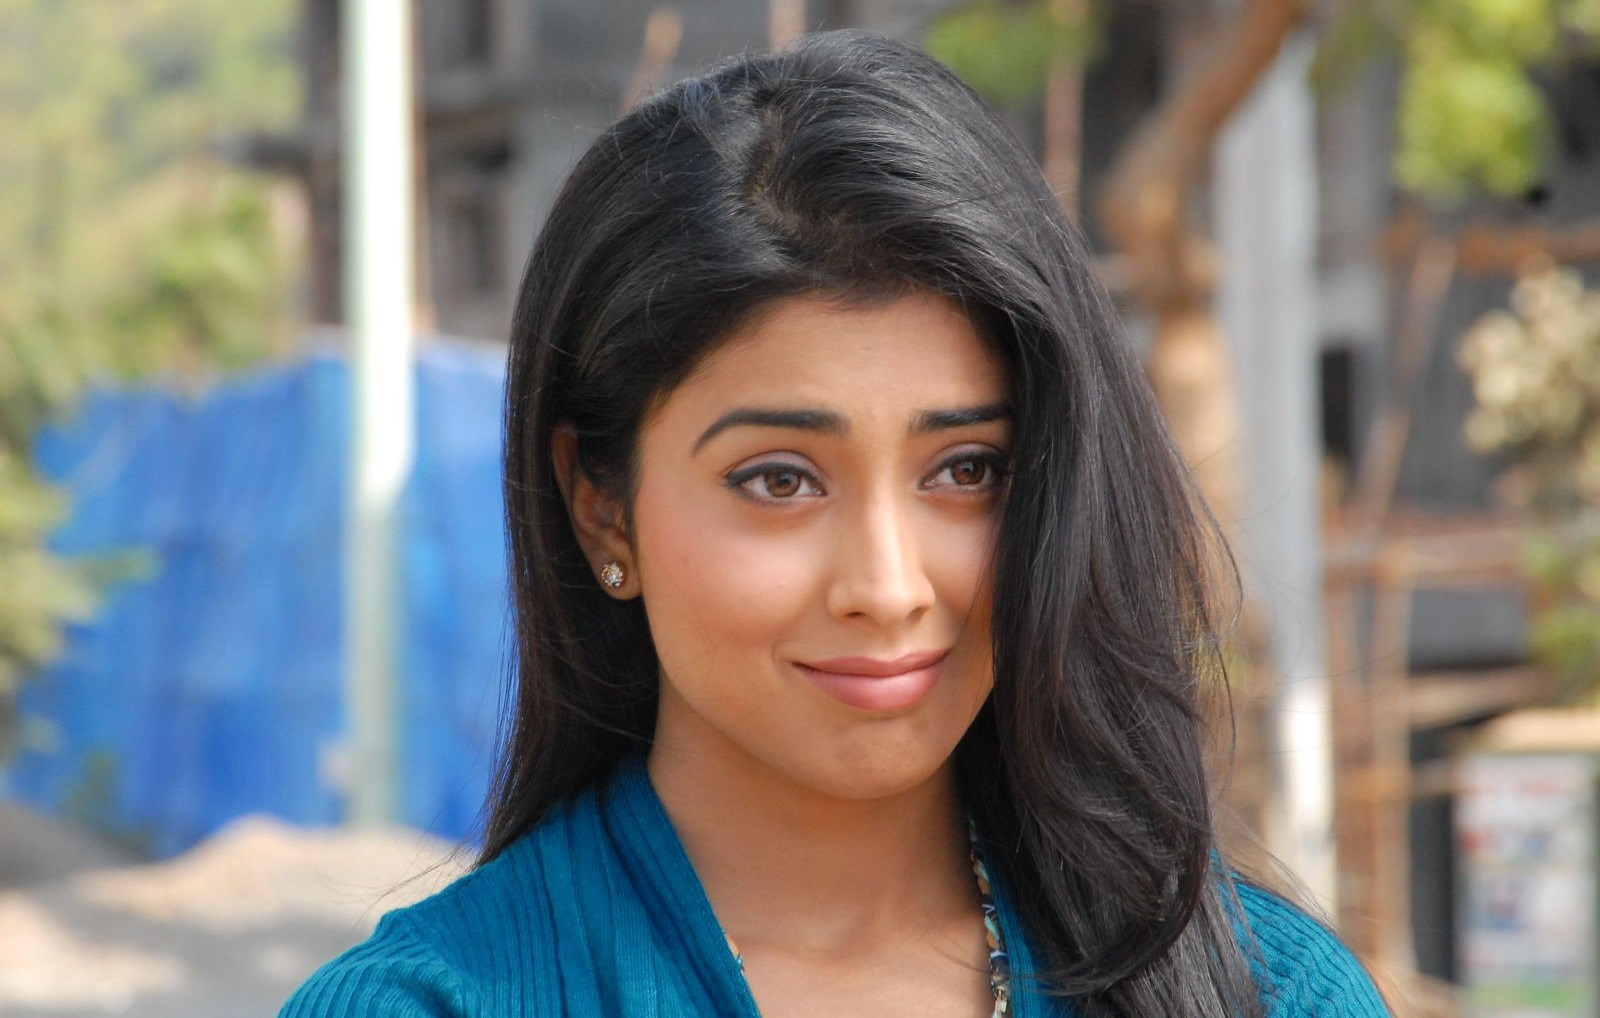 shriya saran bollywood actress new pictures, images (high quality